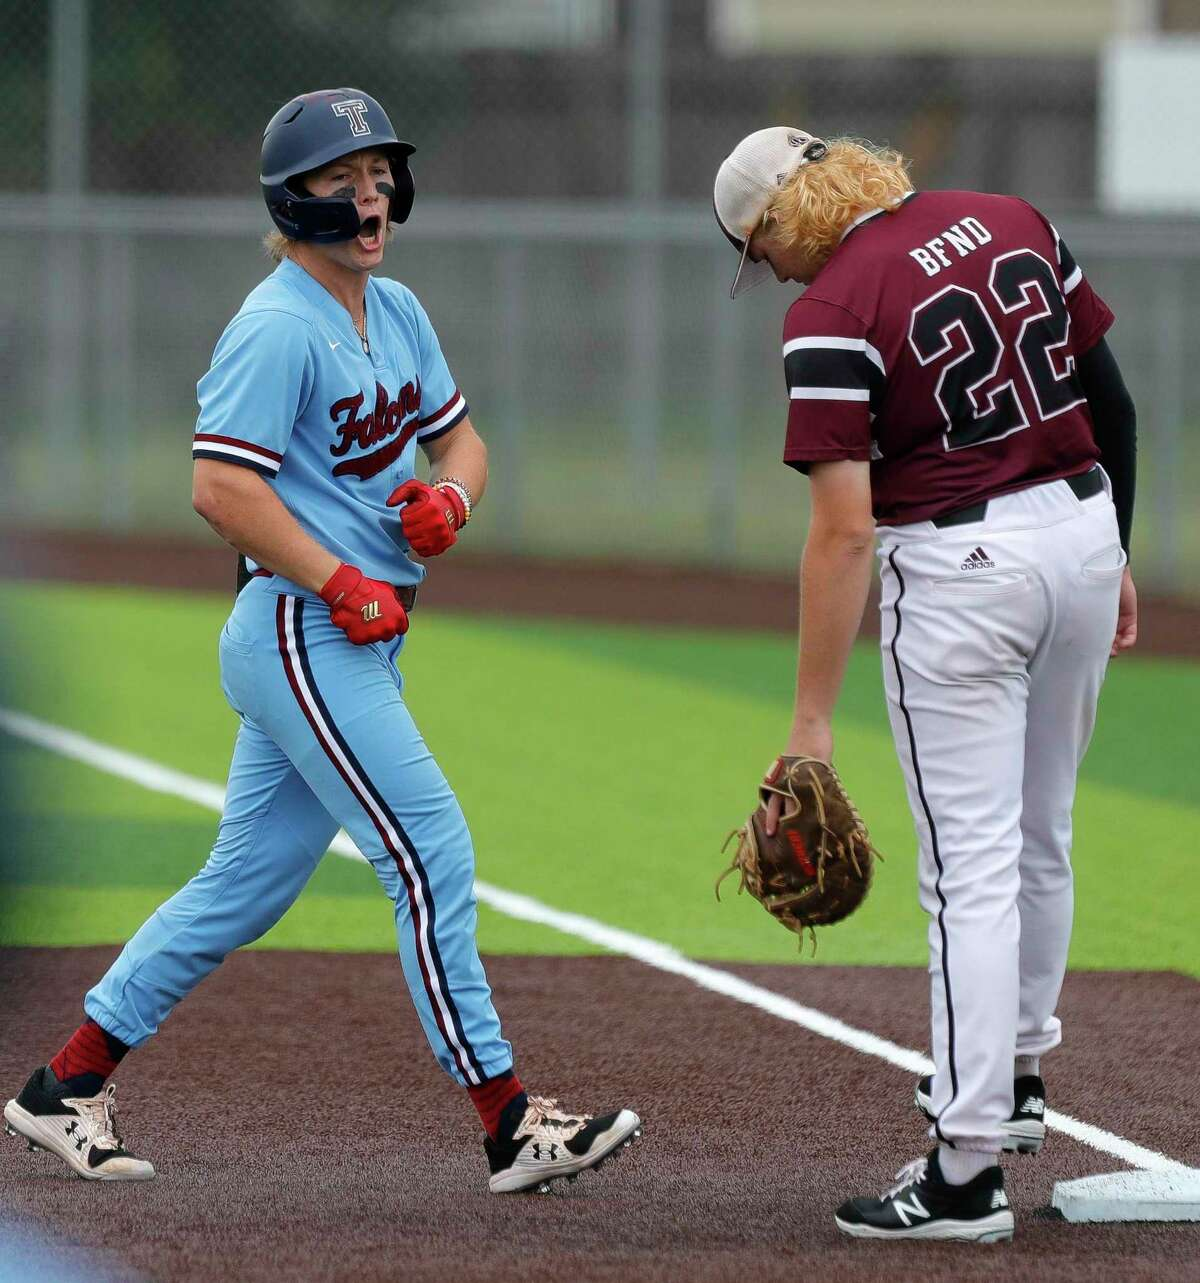 Will Stark #4 of Katy Tompkins reacts after hitting a single in the first inning during Game 3 of a Region II-6A high school baseball quarterfinal series at Tomball Memorial High School, Saturday, May 22, 2021, in Tomball.